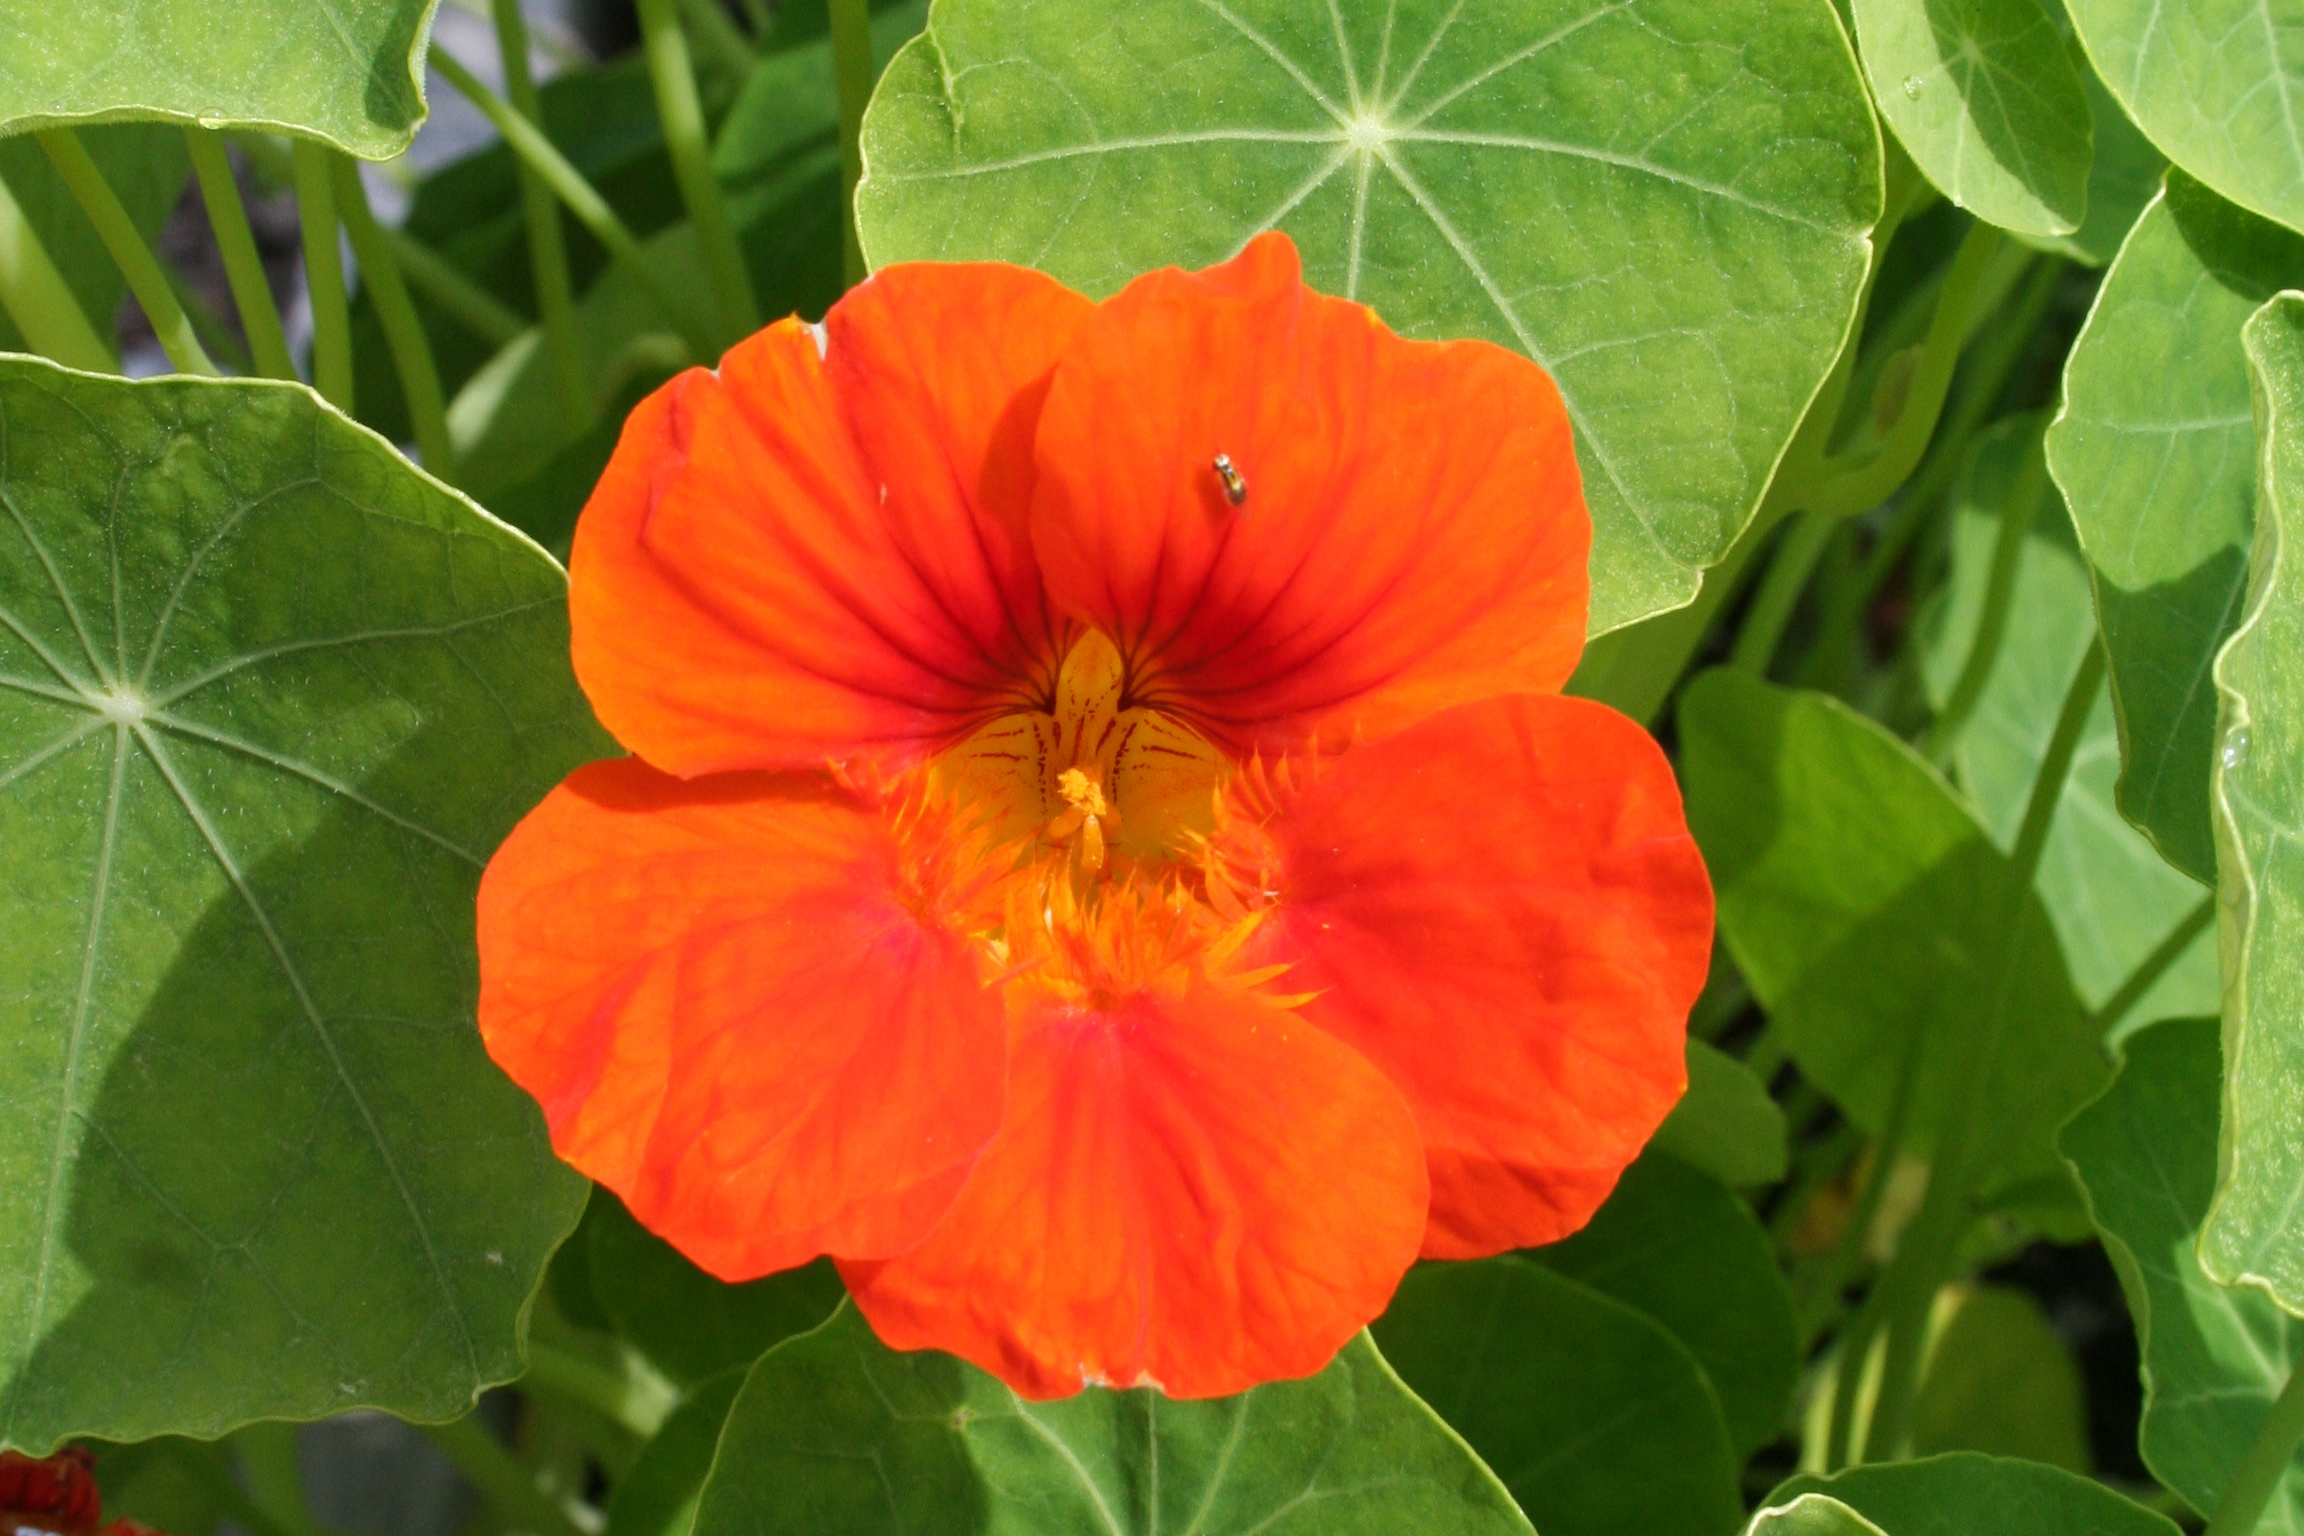 Sunset Green Home Garden Nasturtiums.JPG